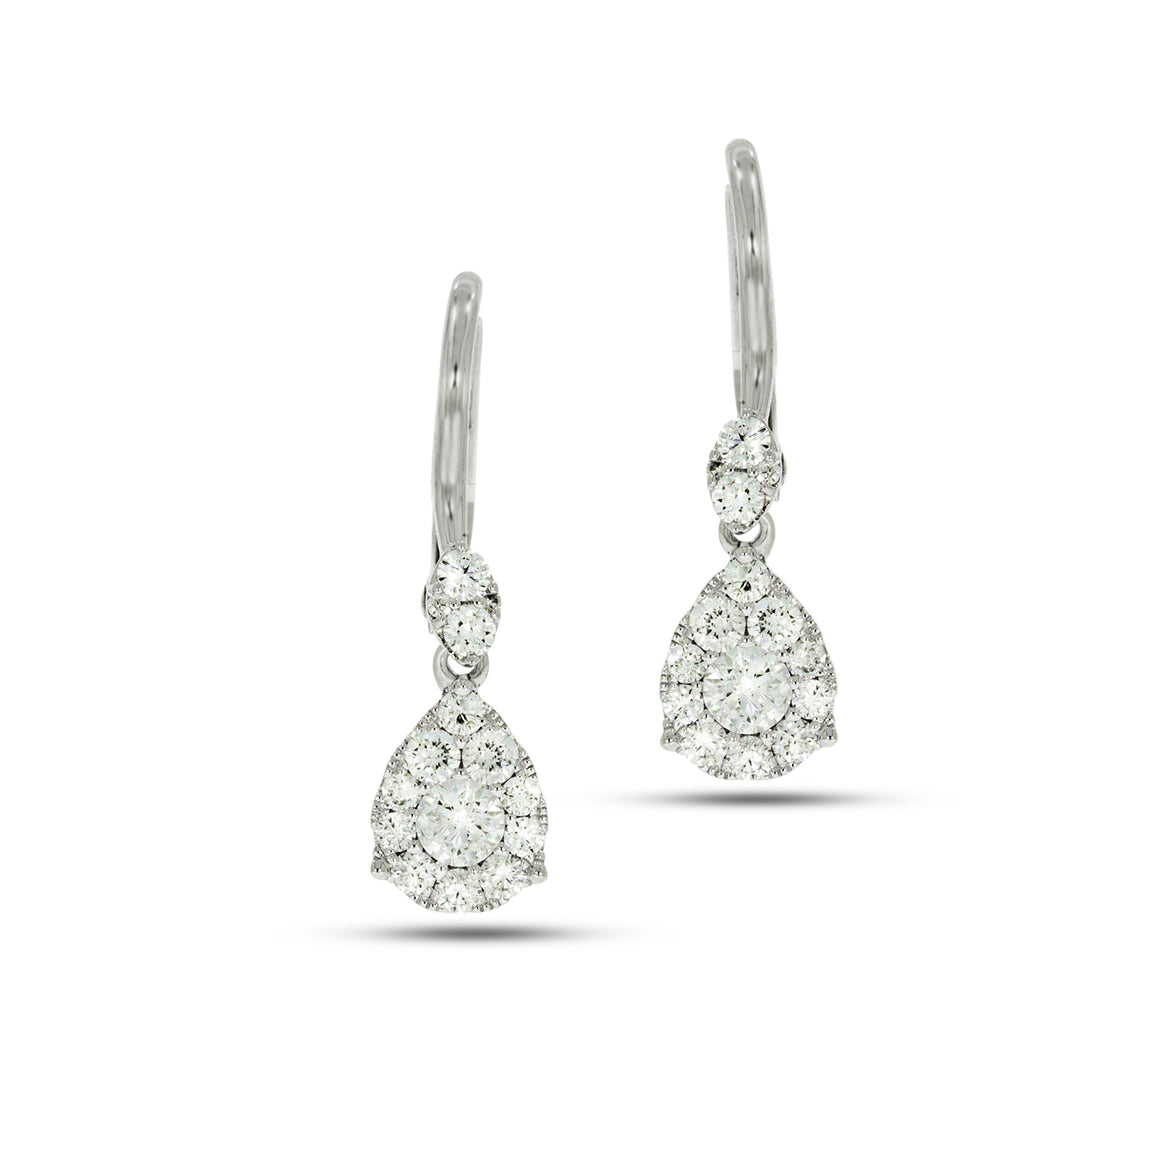 Drop Earrings set with total of 0.73ct Round diamonds White gold, teardrop shaped.